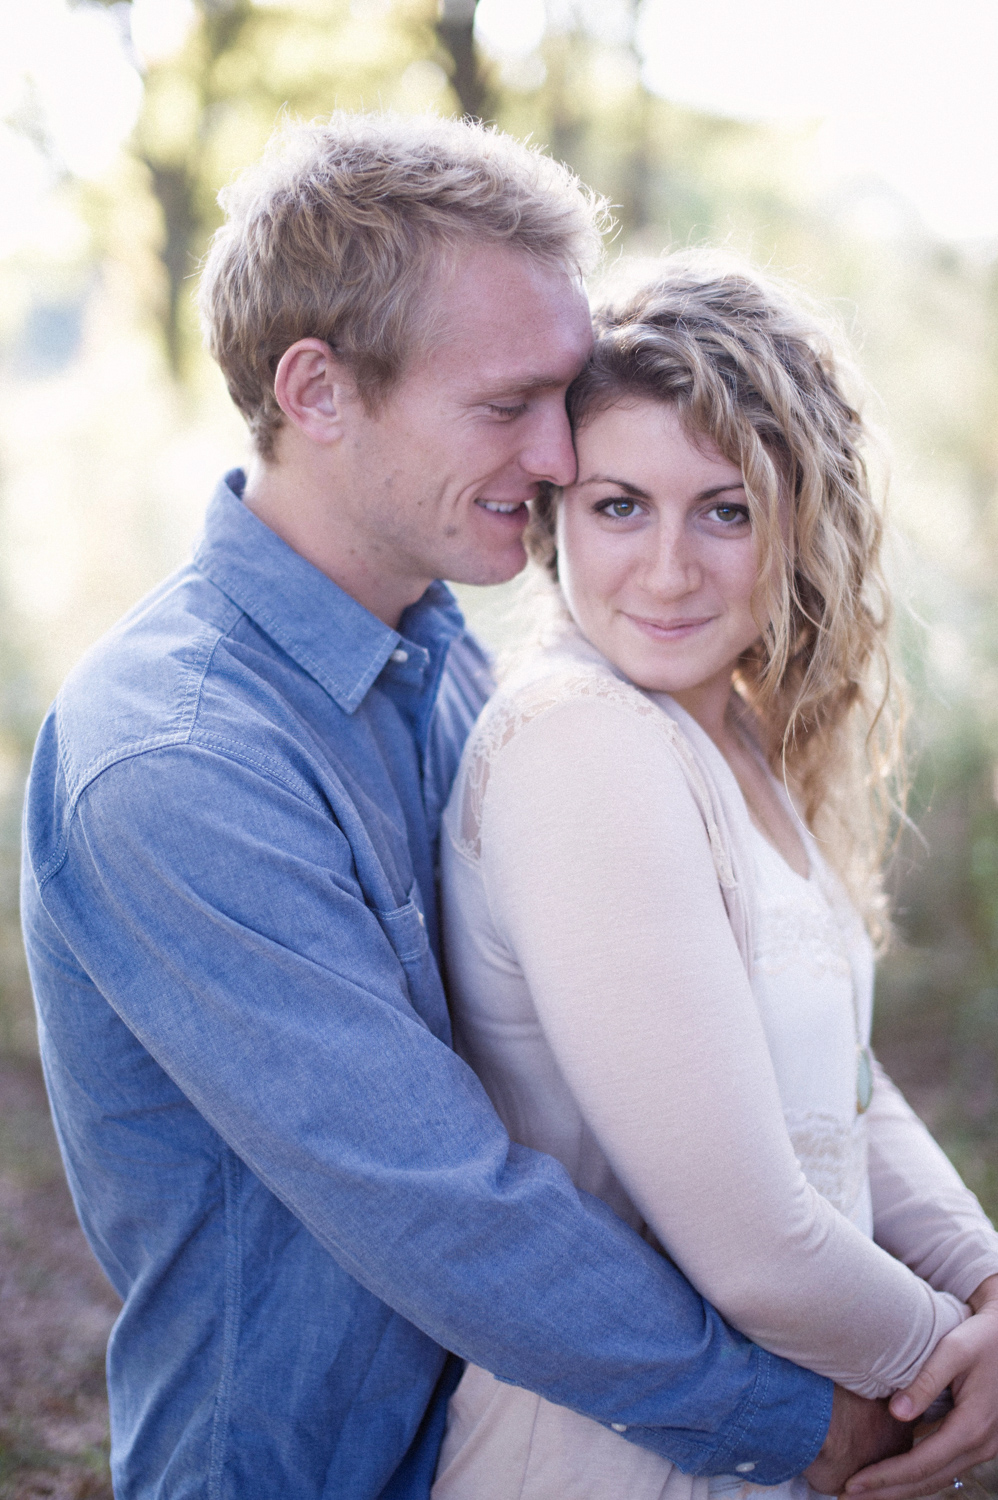 cowles-engagement-session-014.jpg